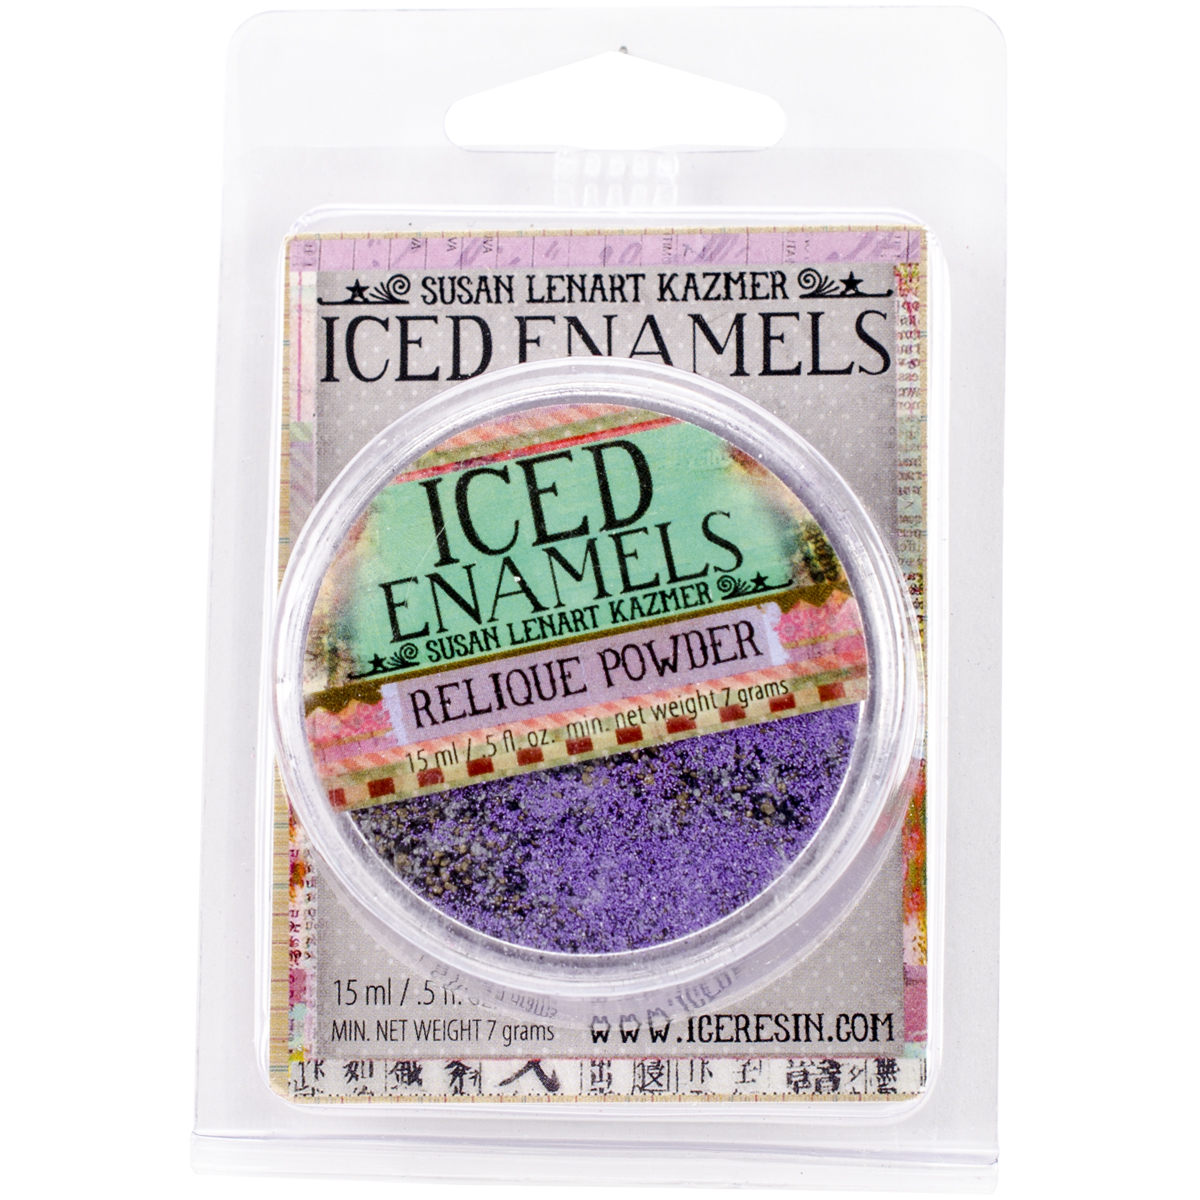 Iced Enamels Relique Powder .5Oz-Amethyst